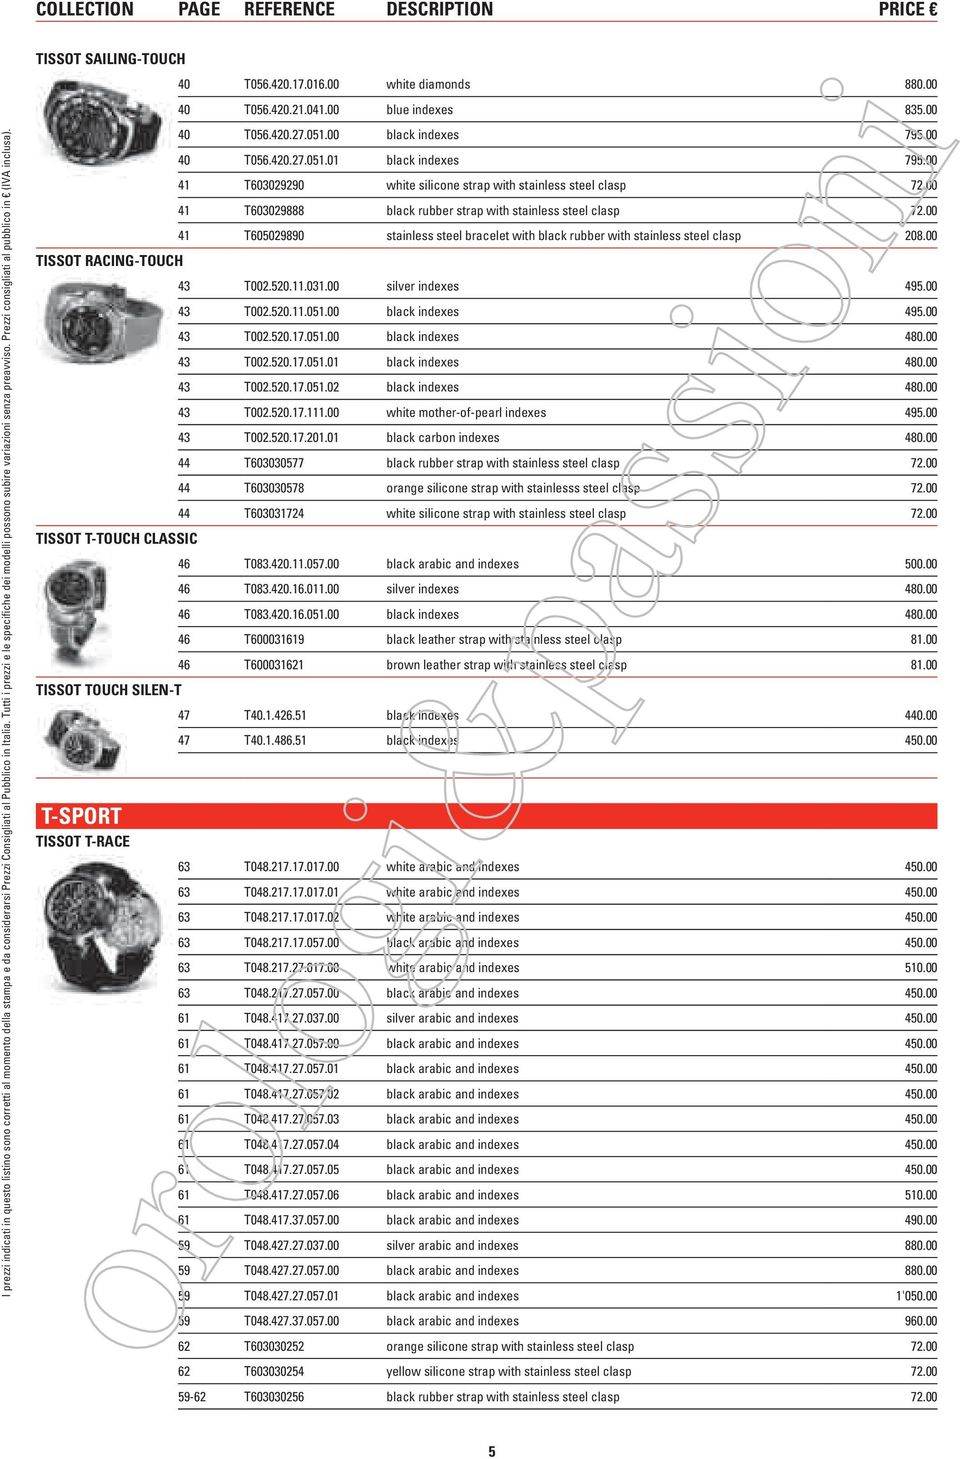 COLLECTION PAGE REFERENCE DESCRIPTION PRICE TISSOT SAILING-TOUCH TISSOT RACING-TOUCH TISSOT T-TOUCH CLASSIC TISSOT TOUCH SILEN-T T-SPORT TISSOT T-RACE 40 T056.420.17.016.00 white diamonds 880.